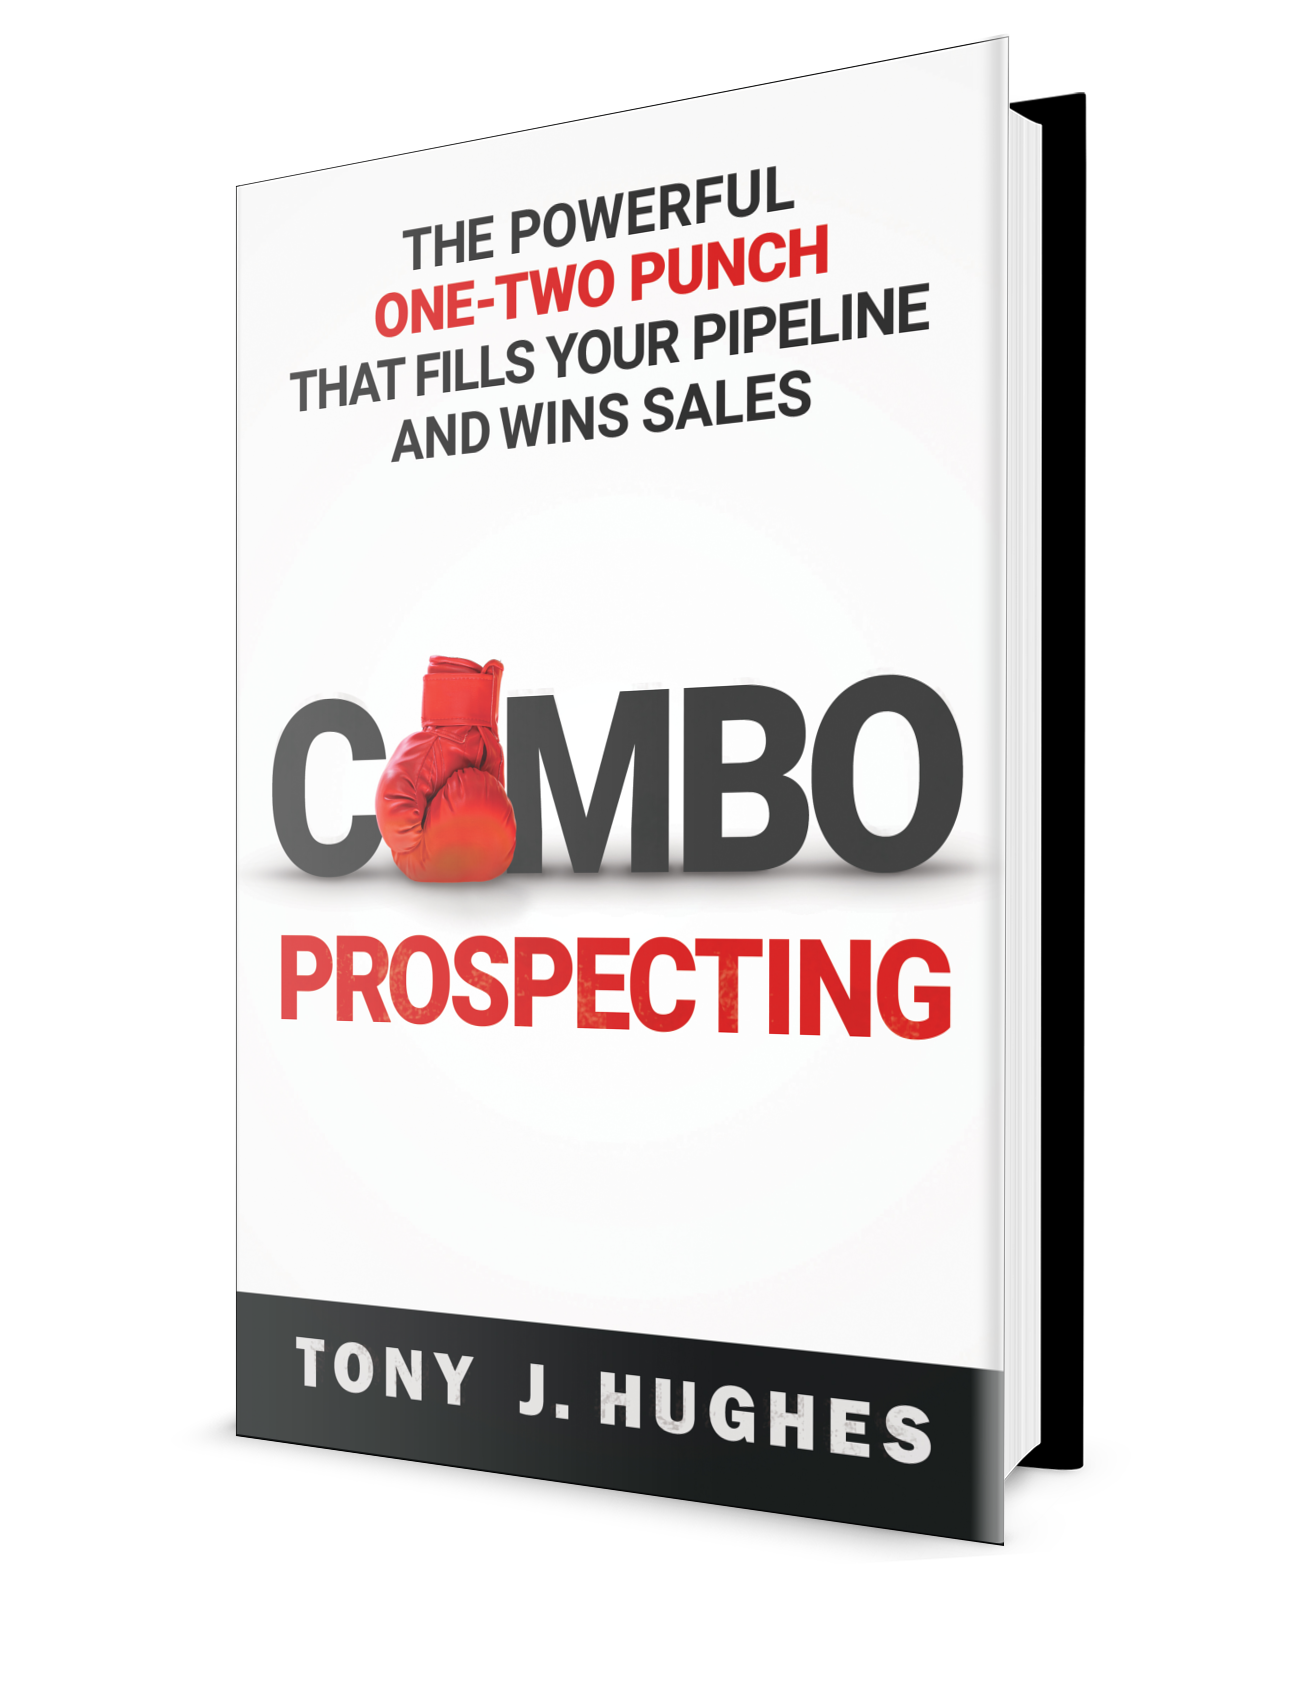 COMBO Prospecting bestselling book